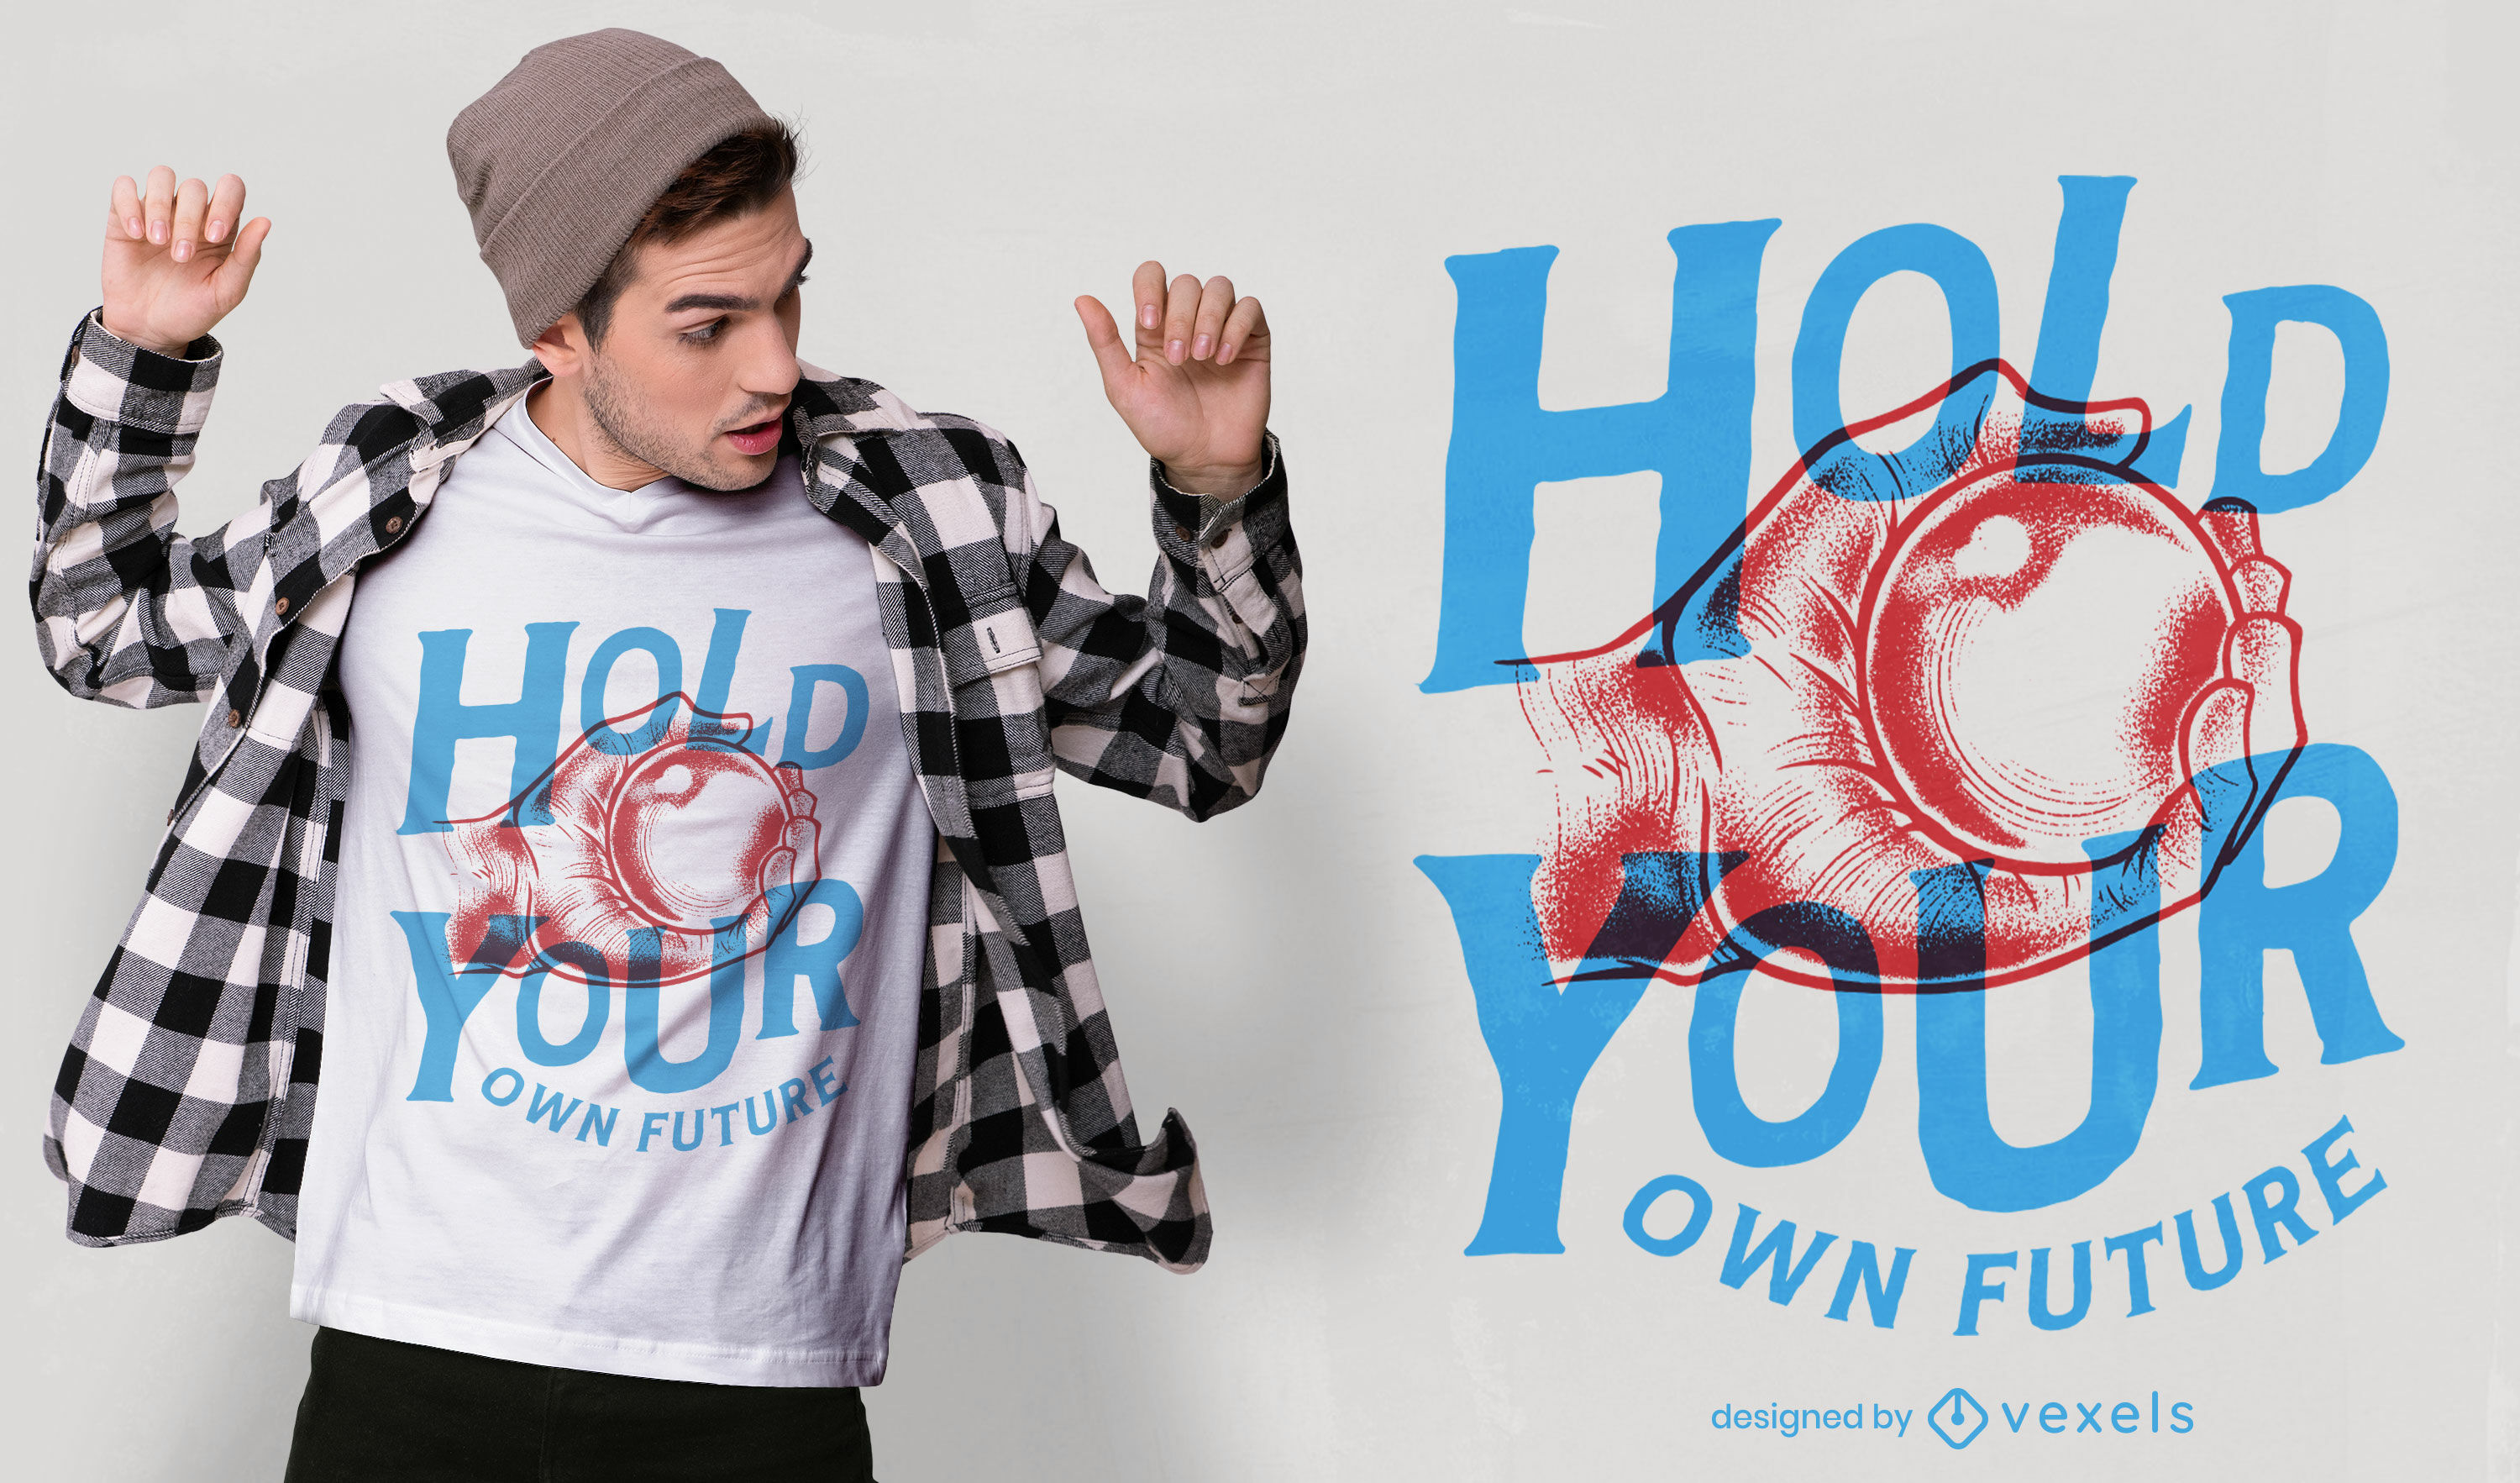 Hold your own future quote t-shirt design